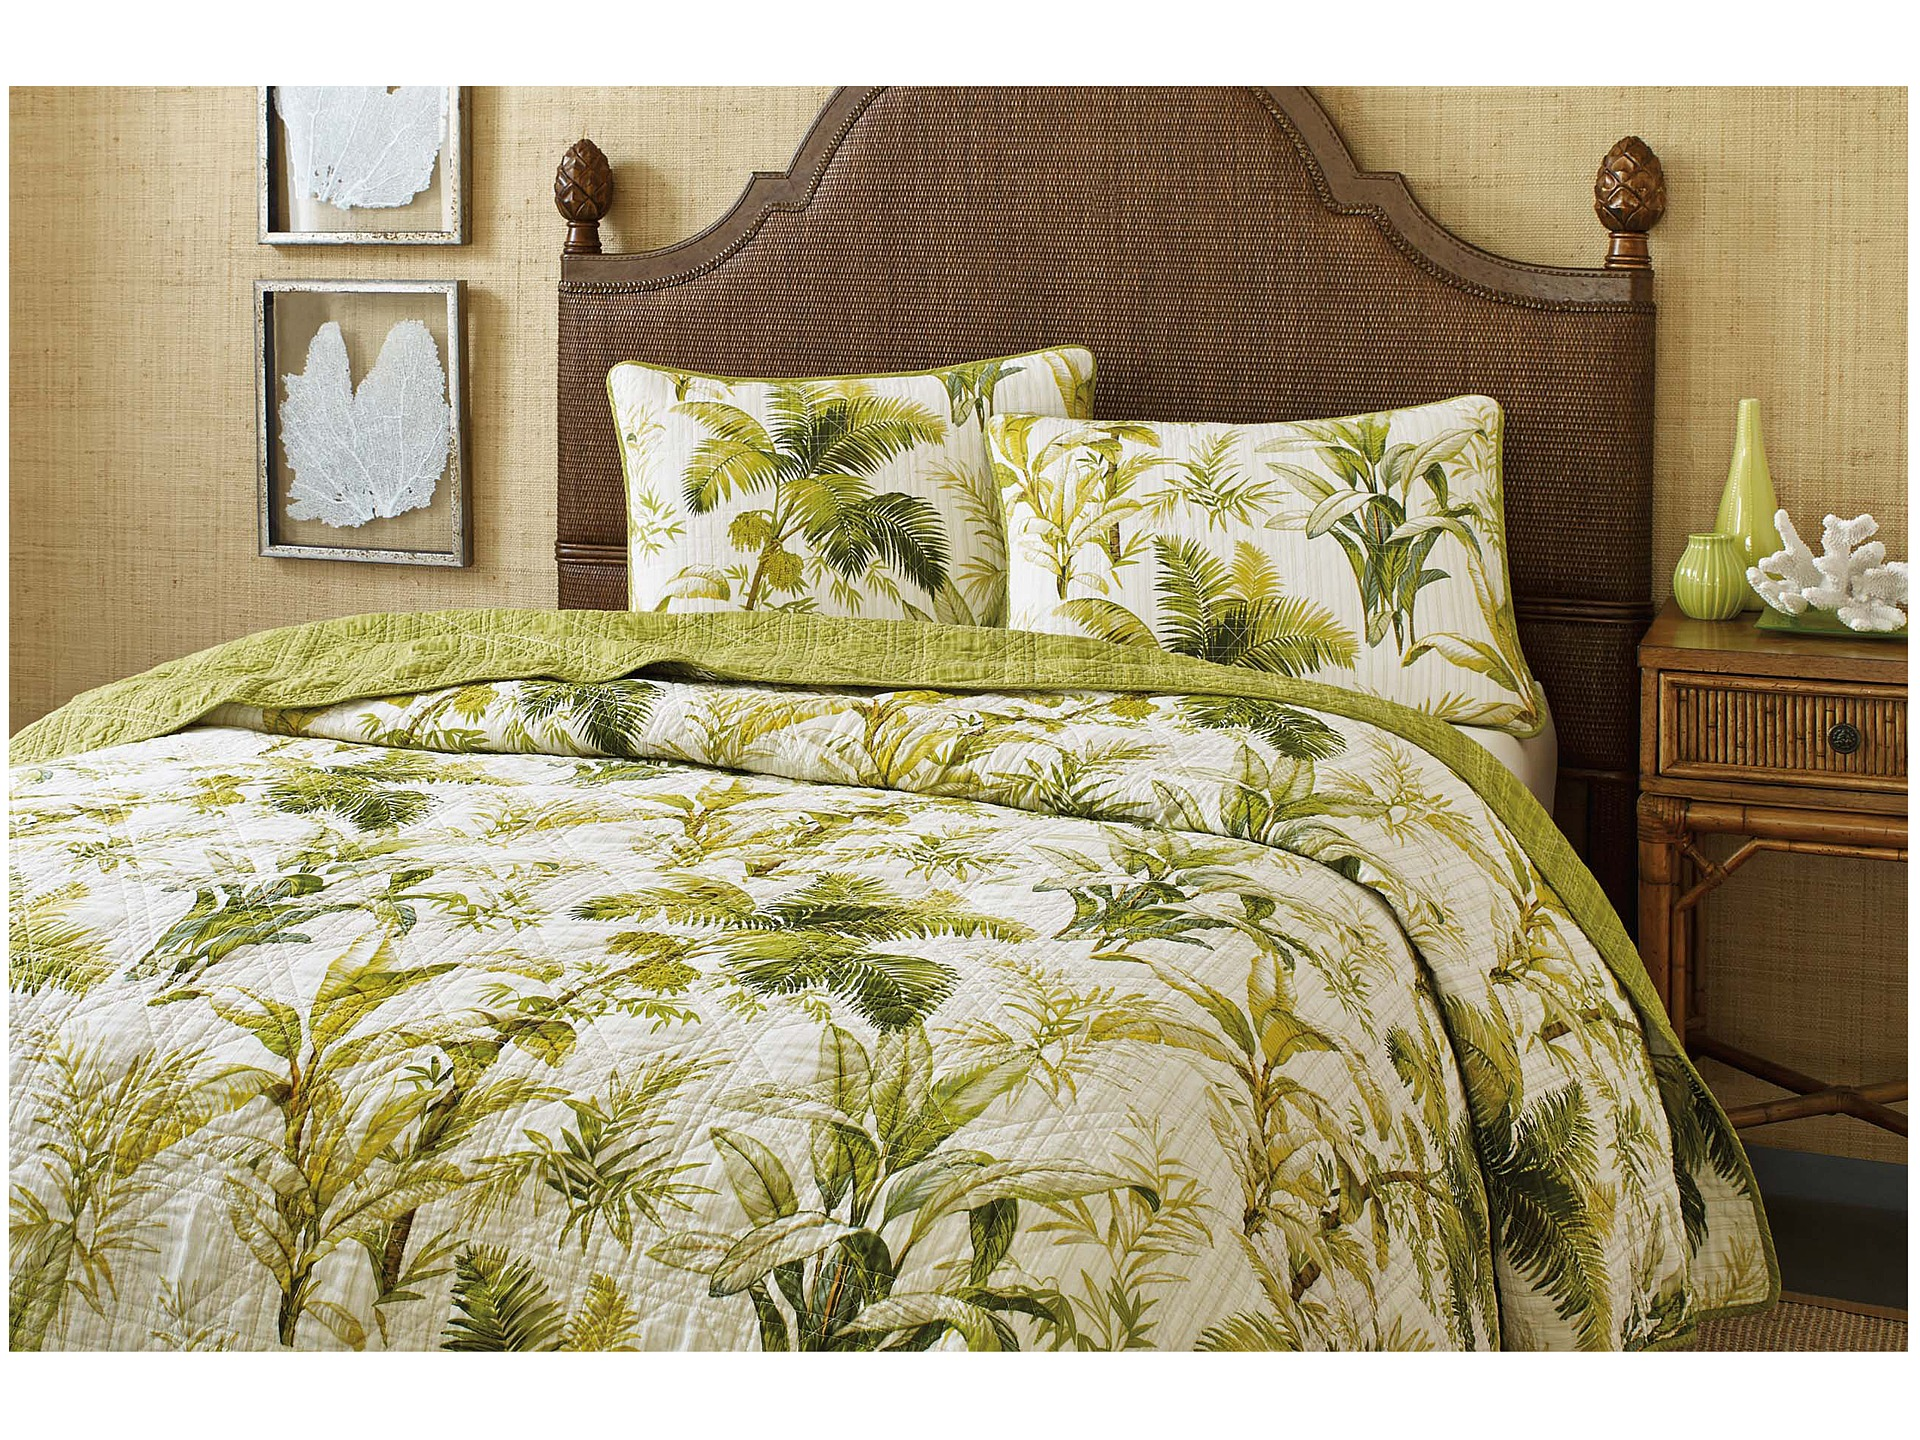 Tommy Bahama Bedding Clearance 28 Images Tommy Bahama